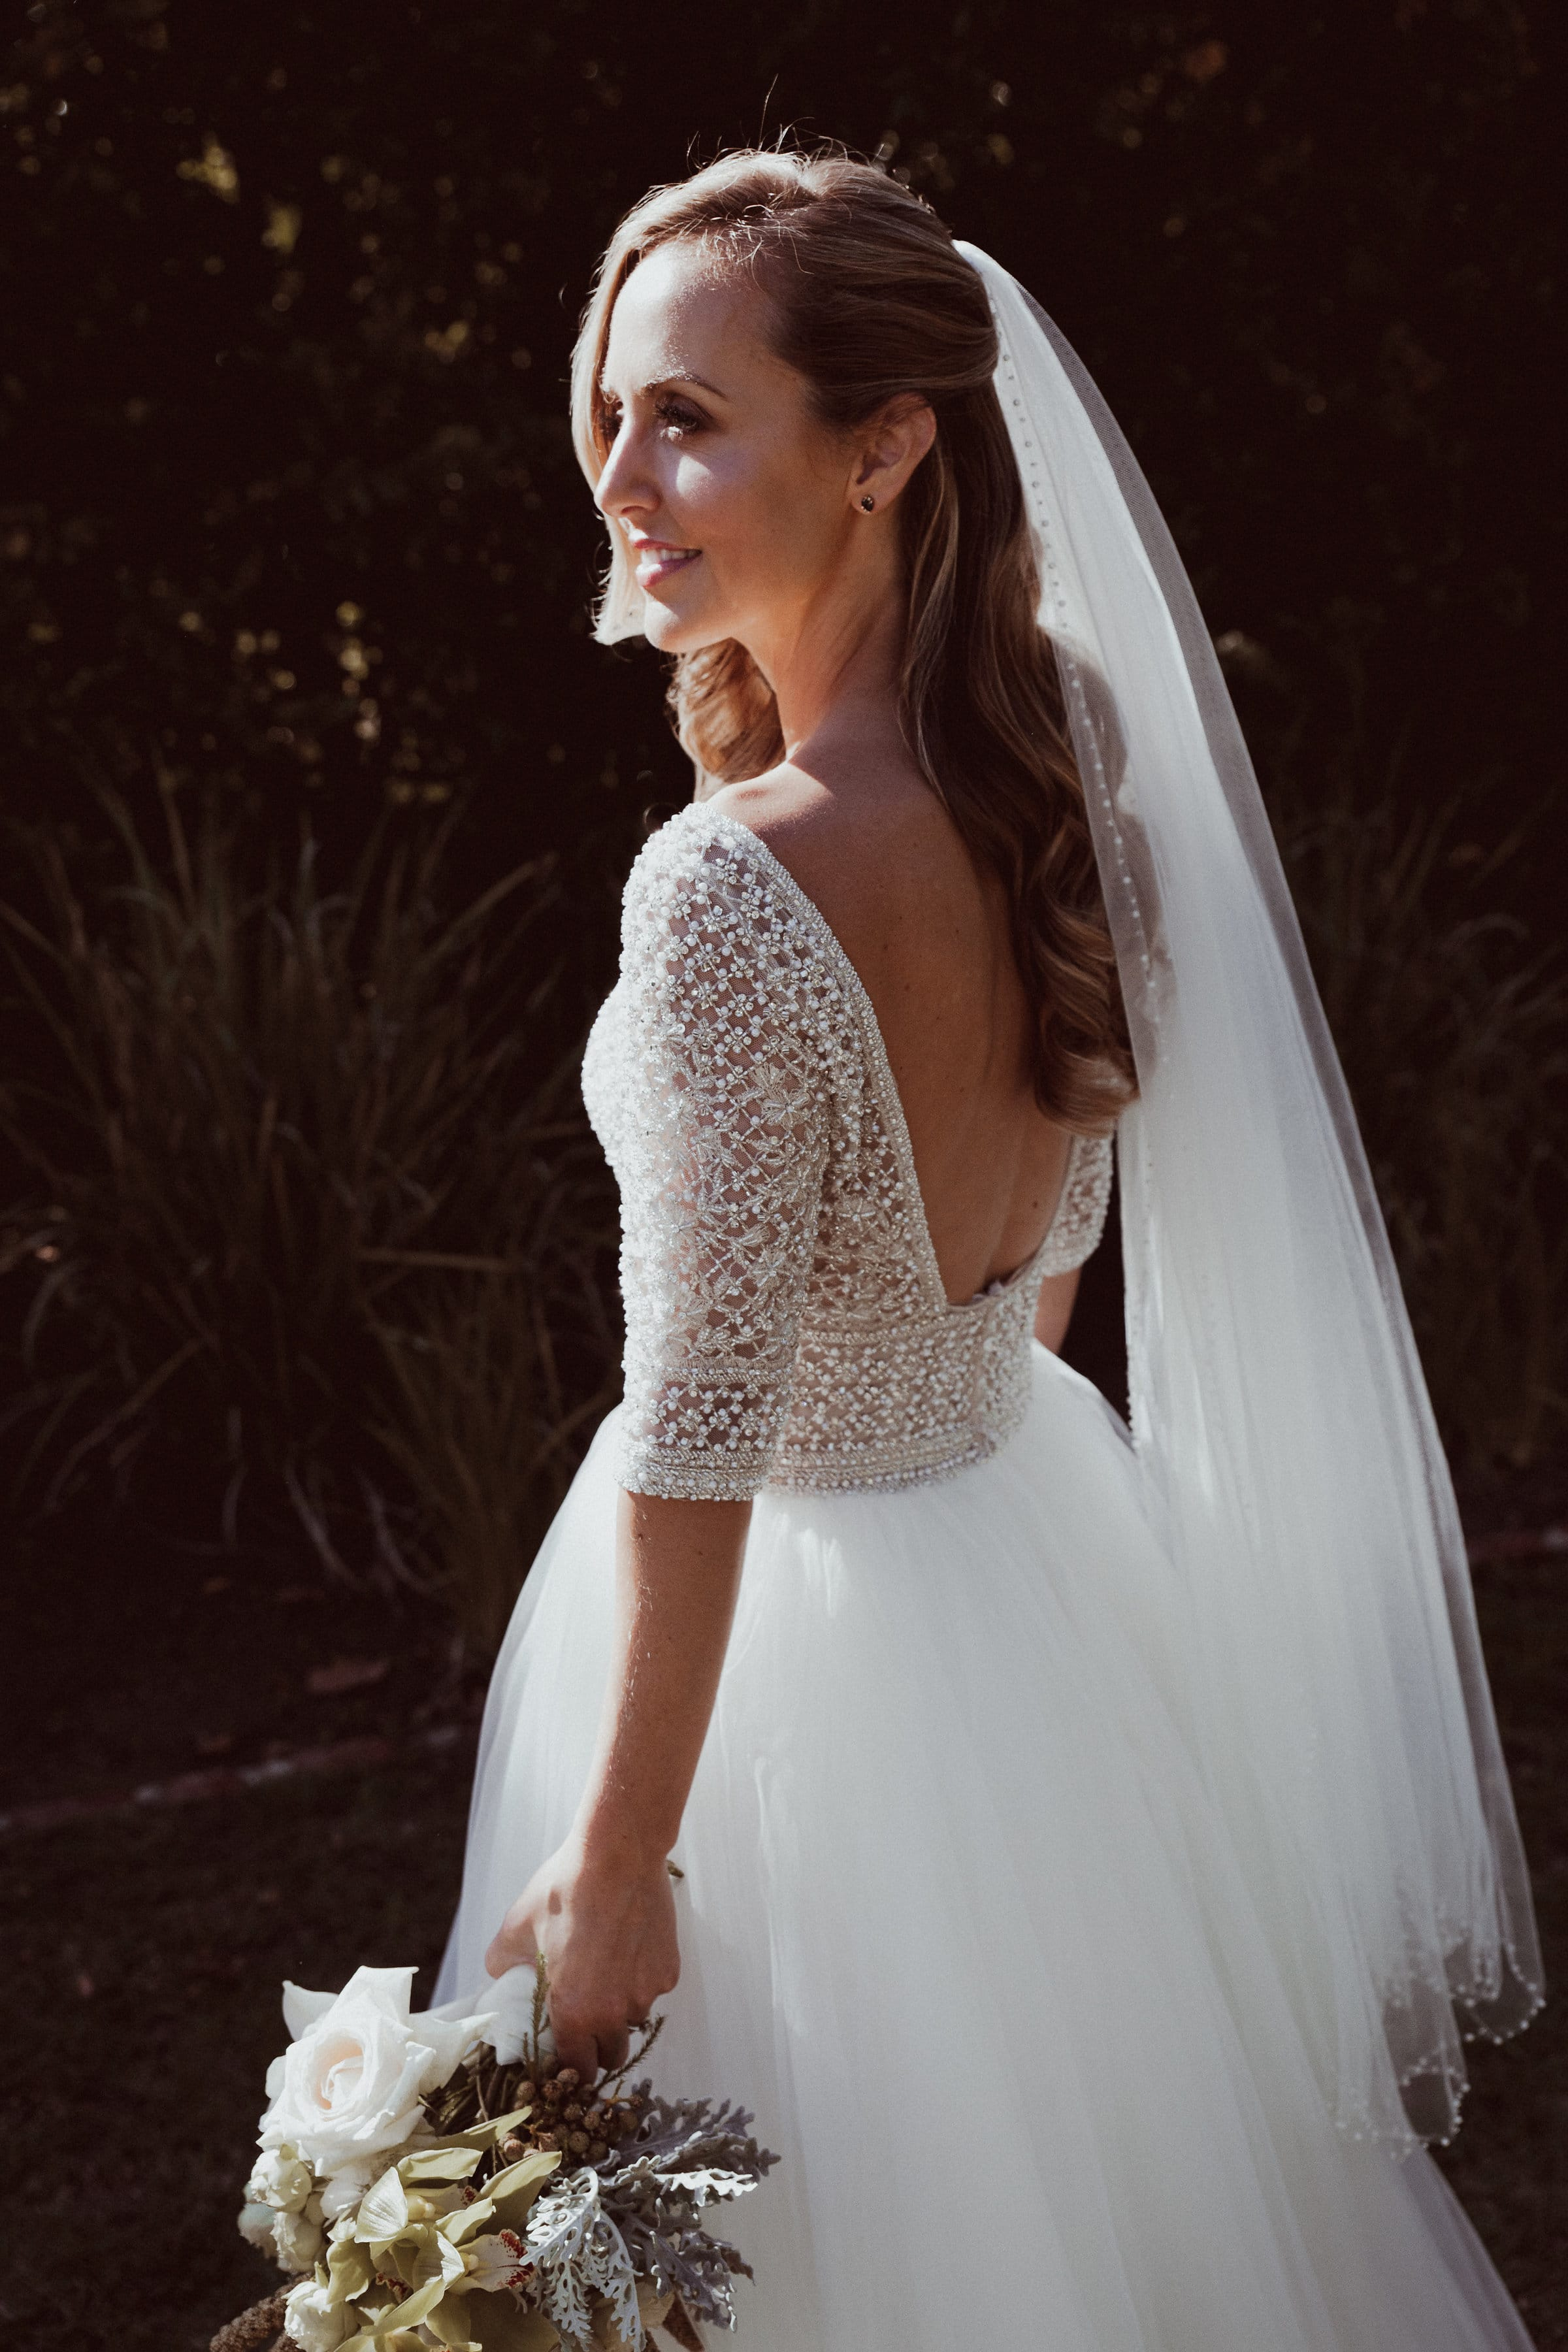 Wedding Photography Styles That Fit Your Unique Bridal Vision. #MidgleyBride Elizabeth wearing Allen wedding dress by Sottero and Midgley.